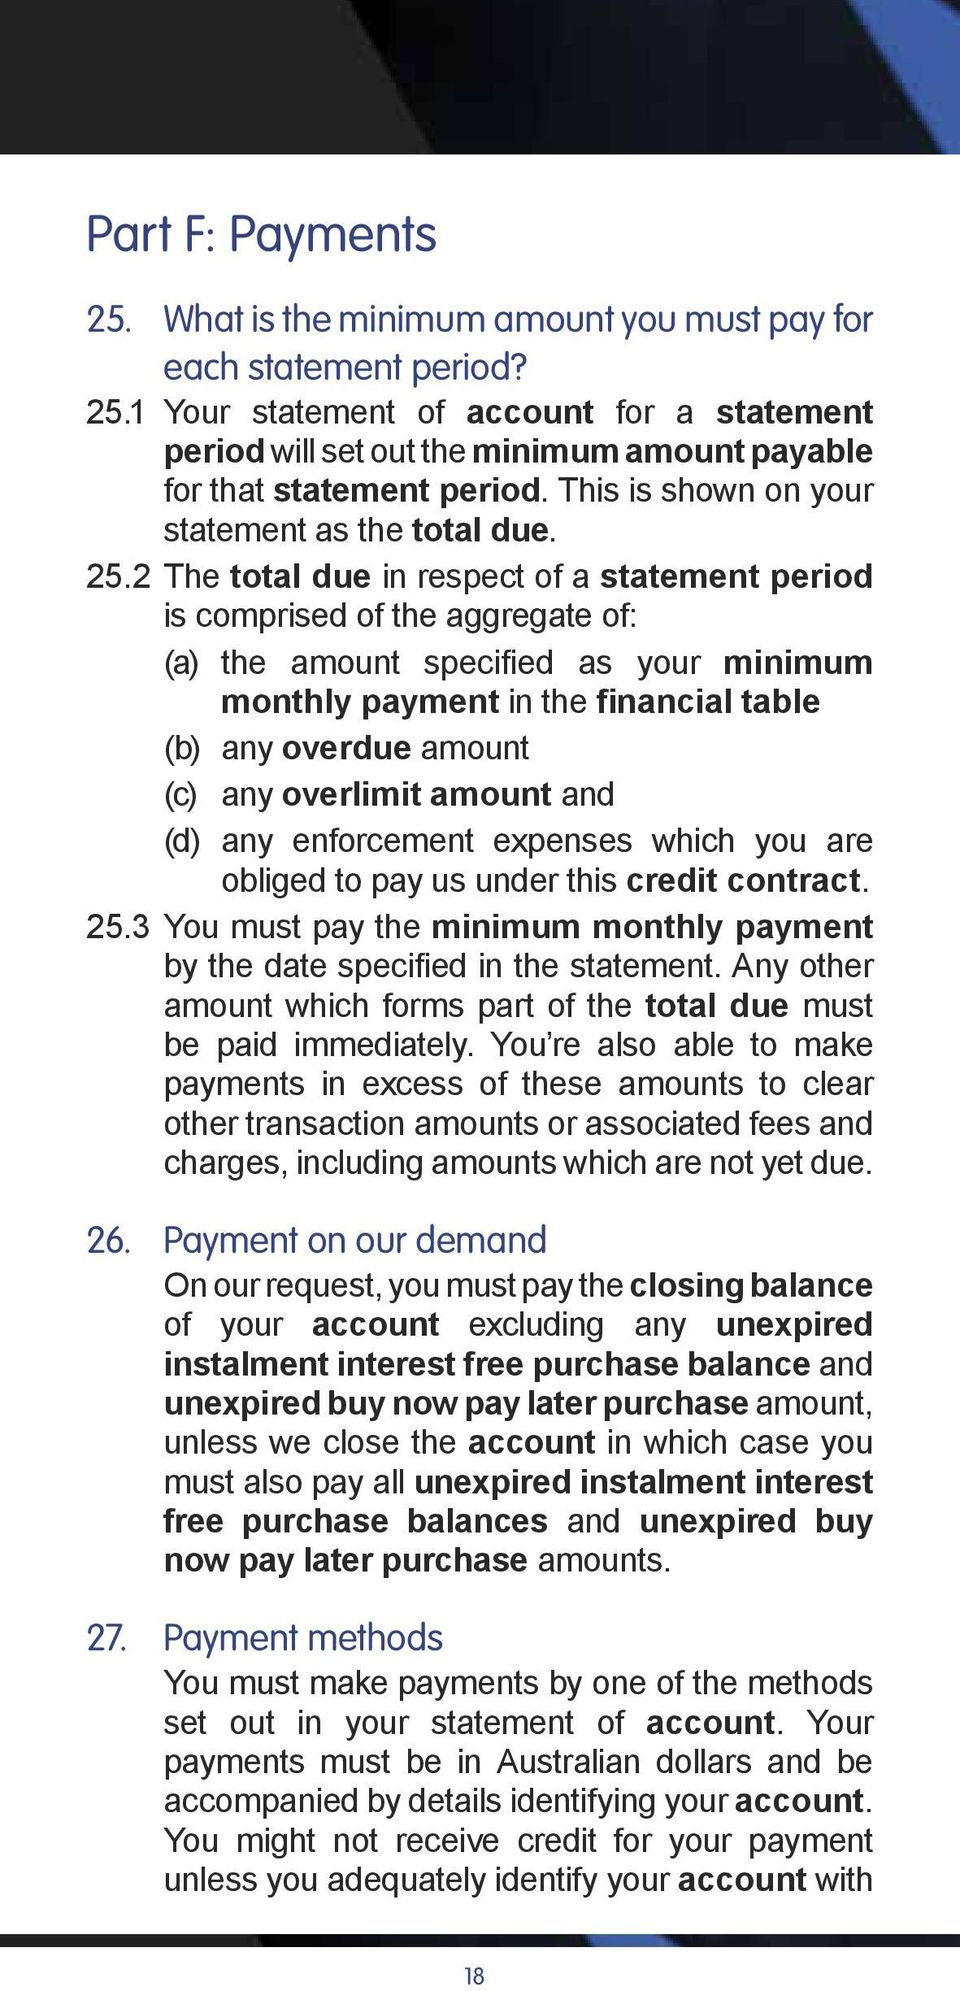 2 The total due in respect of a statement period is comprised of the aggregate of: (a) the amount specified as your minimum monthly payment in the financial table (b) any overdue amount (c) any